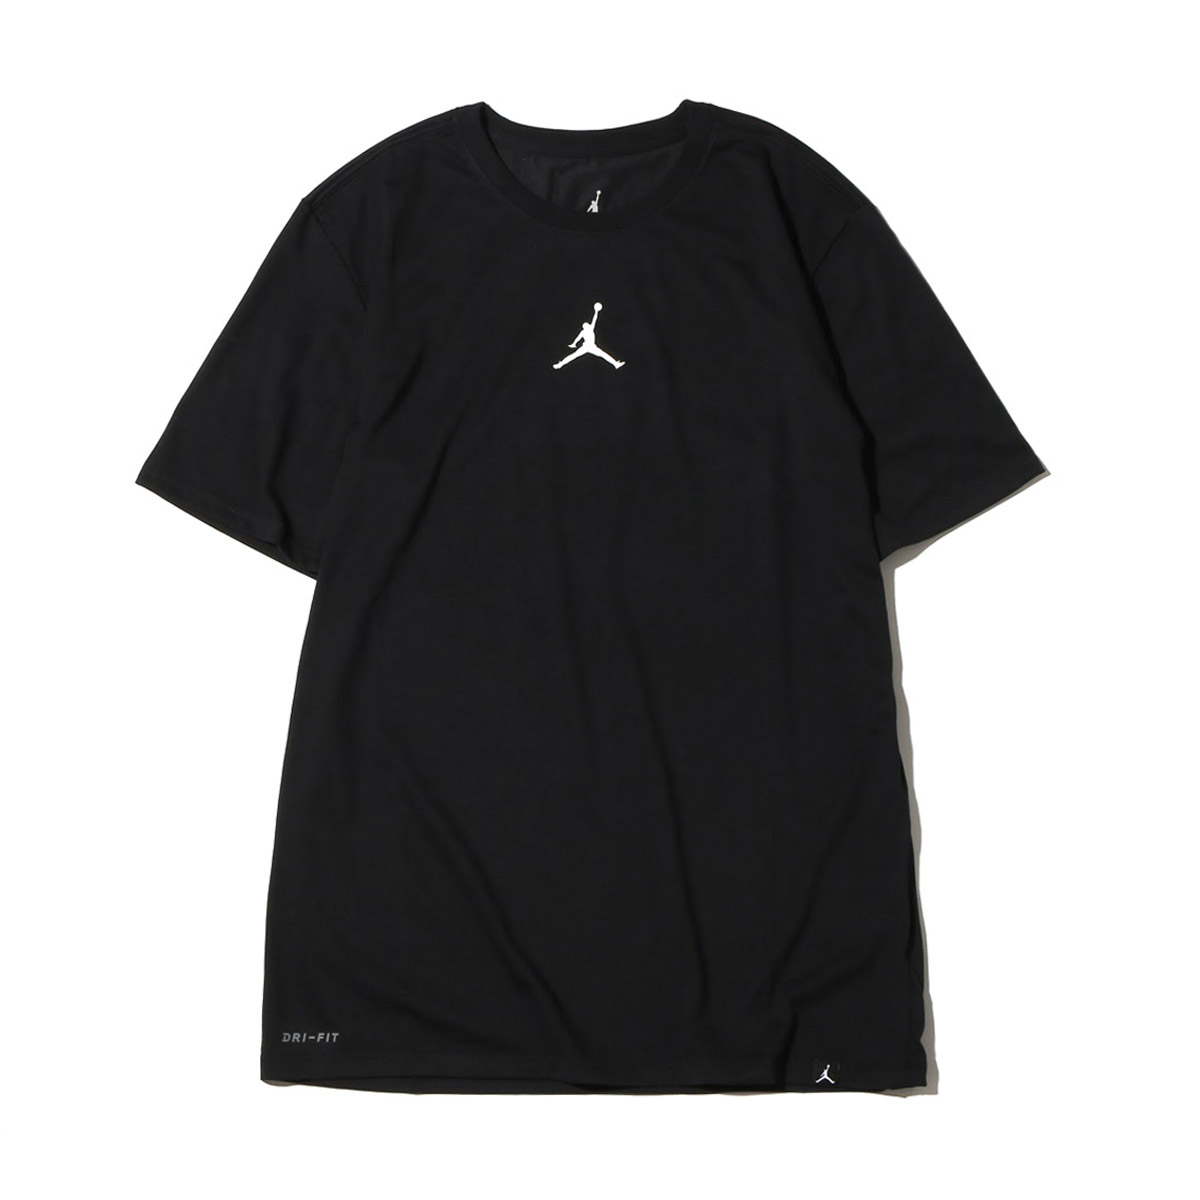 DRI-FIT plane jersey. It is a jump man logo at the front desk. AIR is  graphic in the back. ef229835b5f3